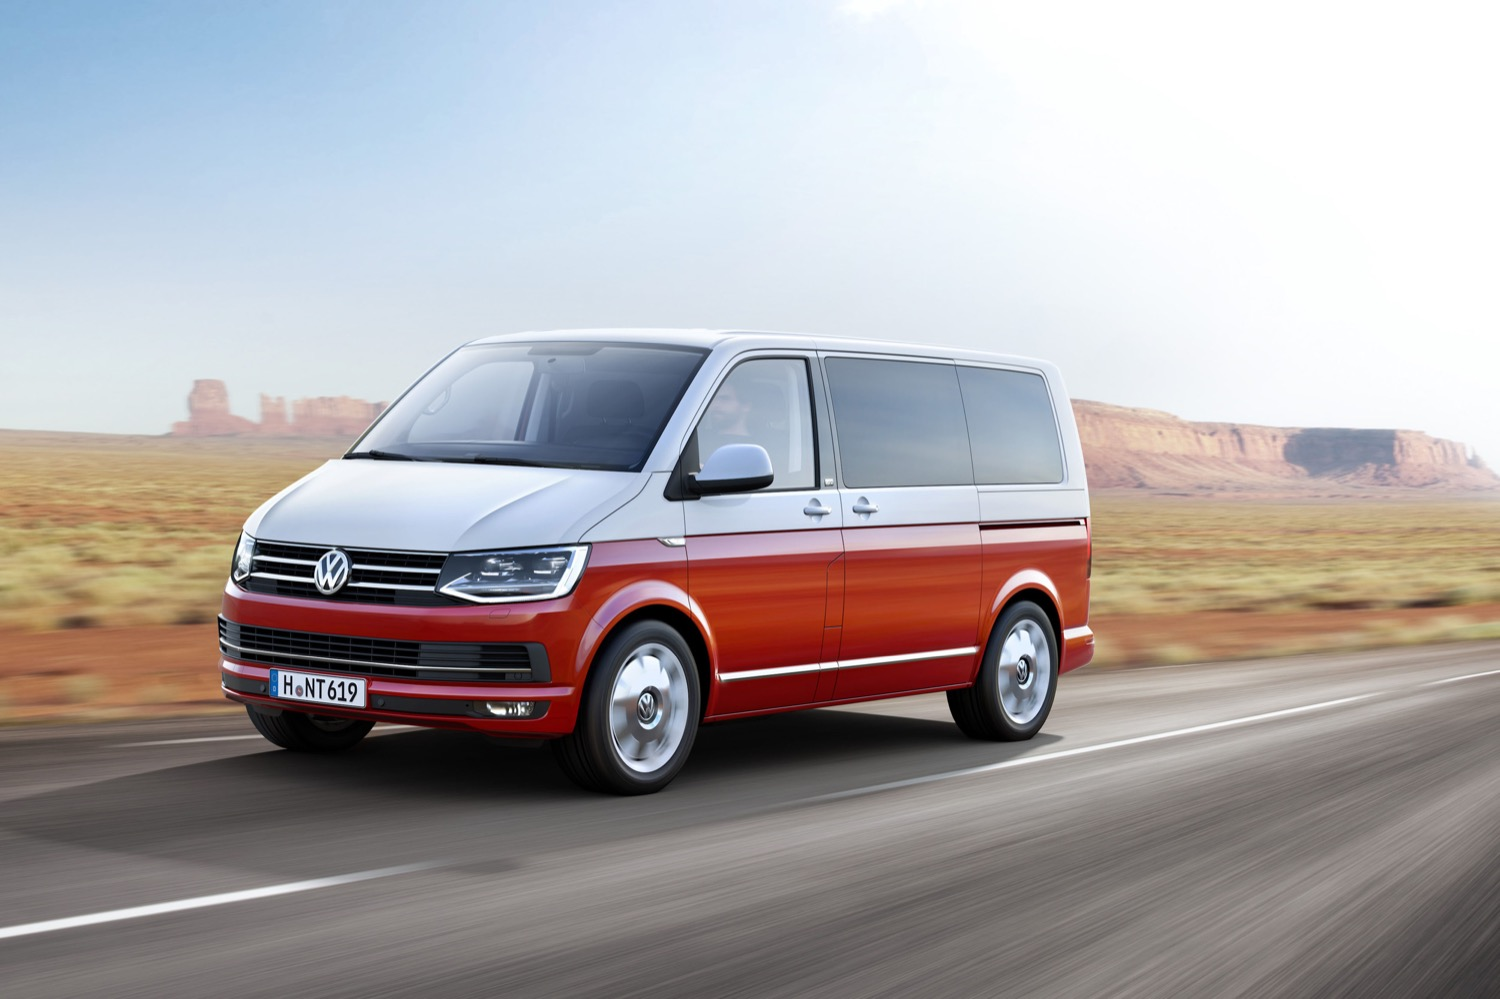 volkswagen officially reveals transporter t6 van line. Black Bedroom Furniture Sets. Home Design Ideas